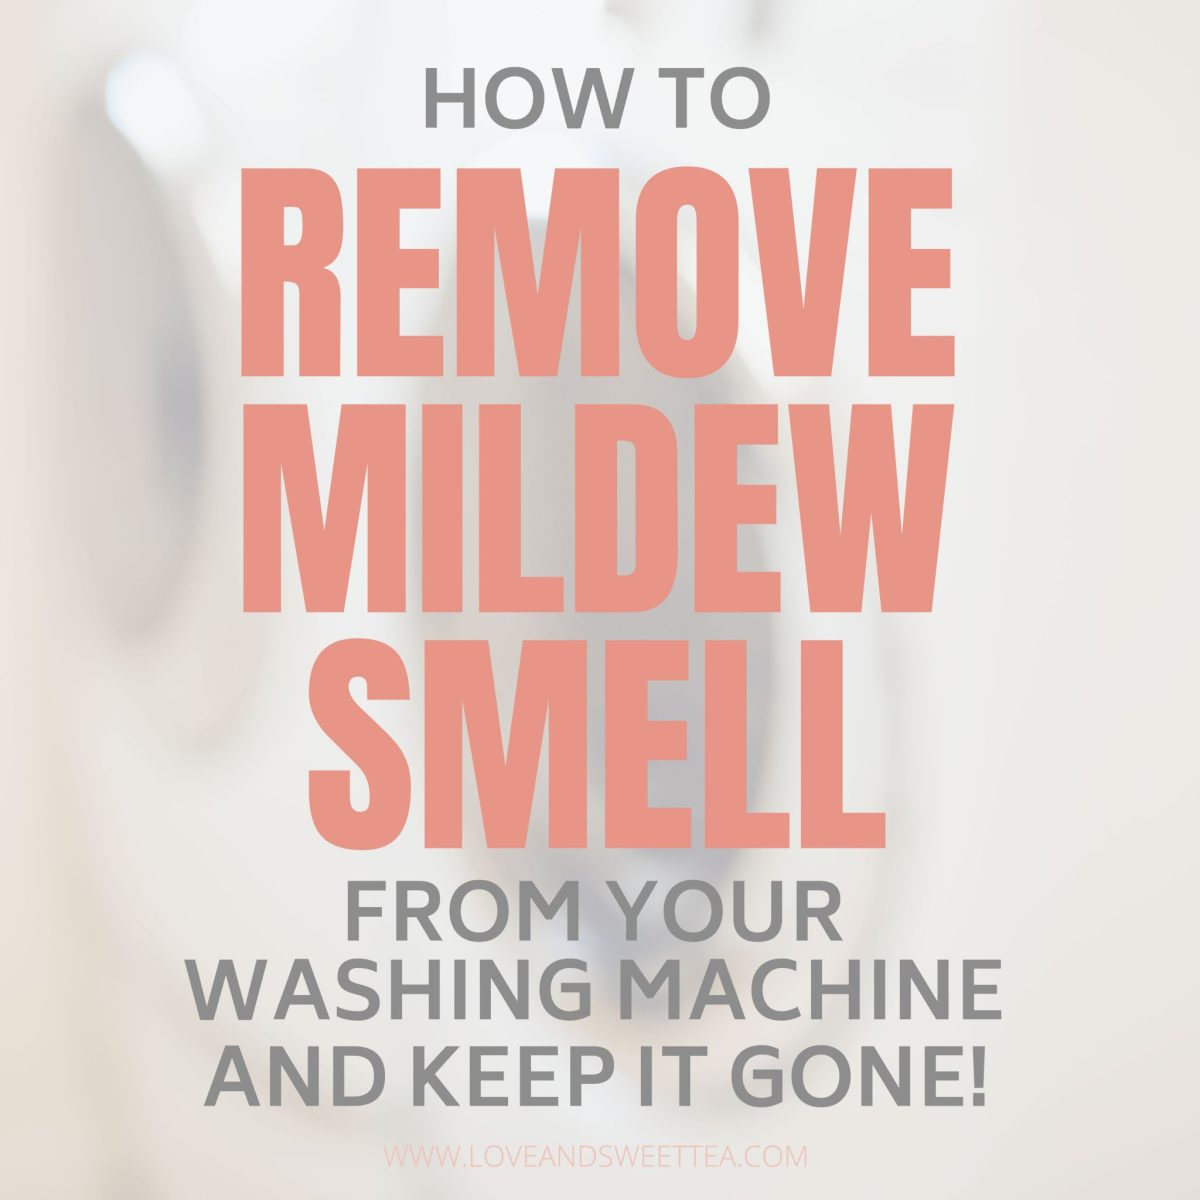 Get The Mildew Smell Out Of Your Washing Machine For Good!